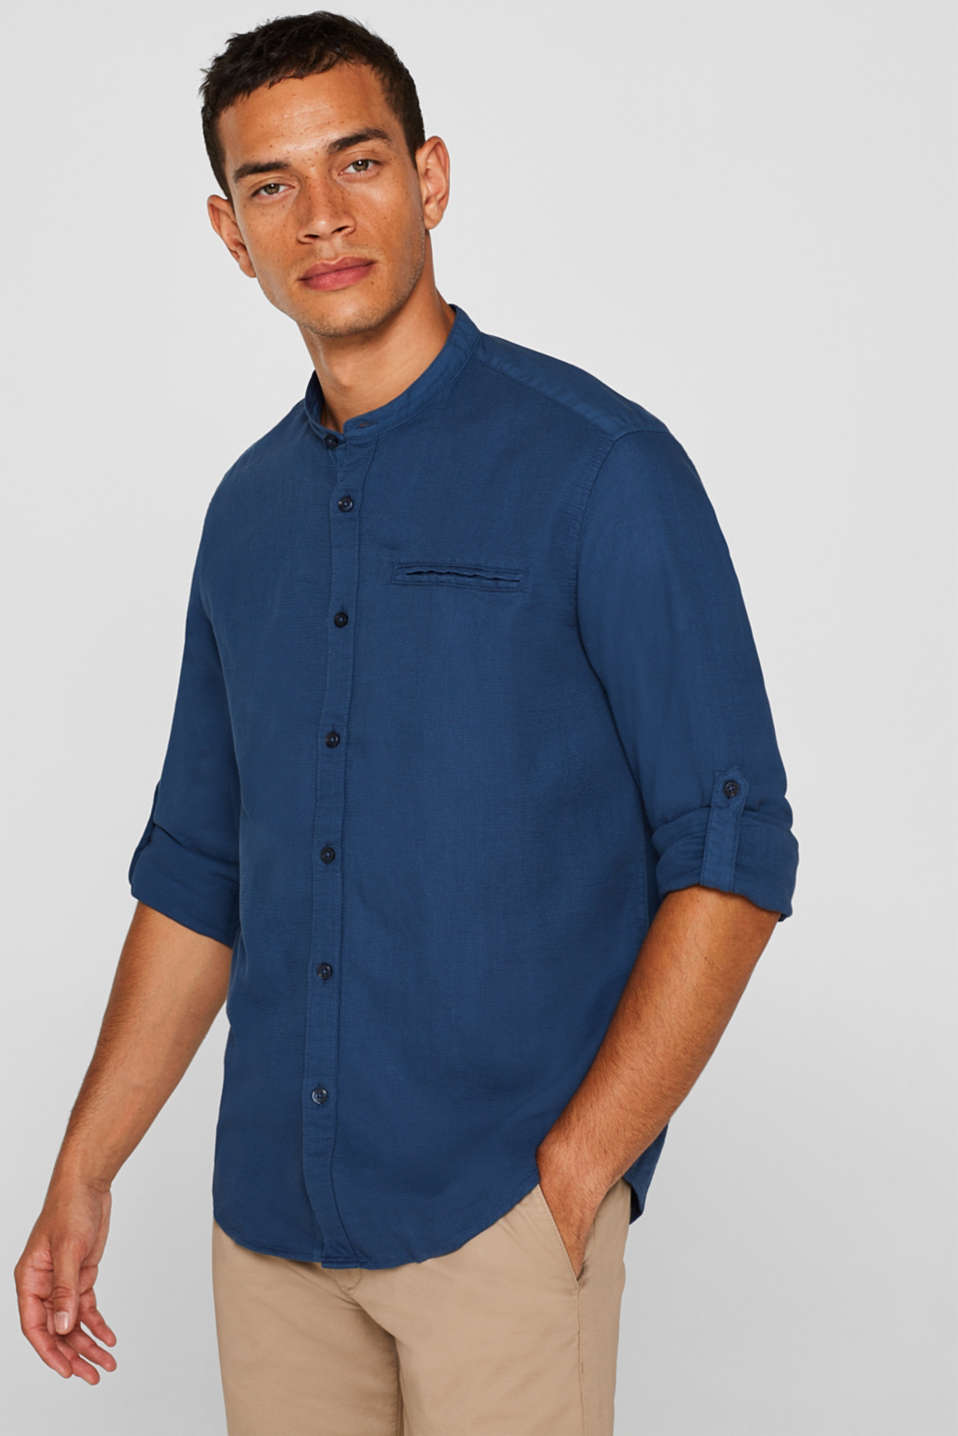 Woven shirt made from 100% cotton shirt